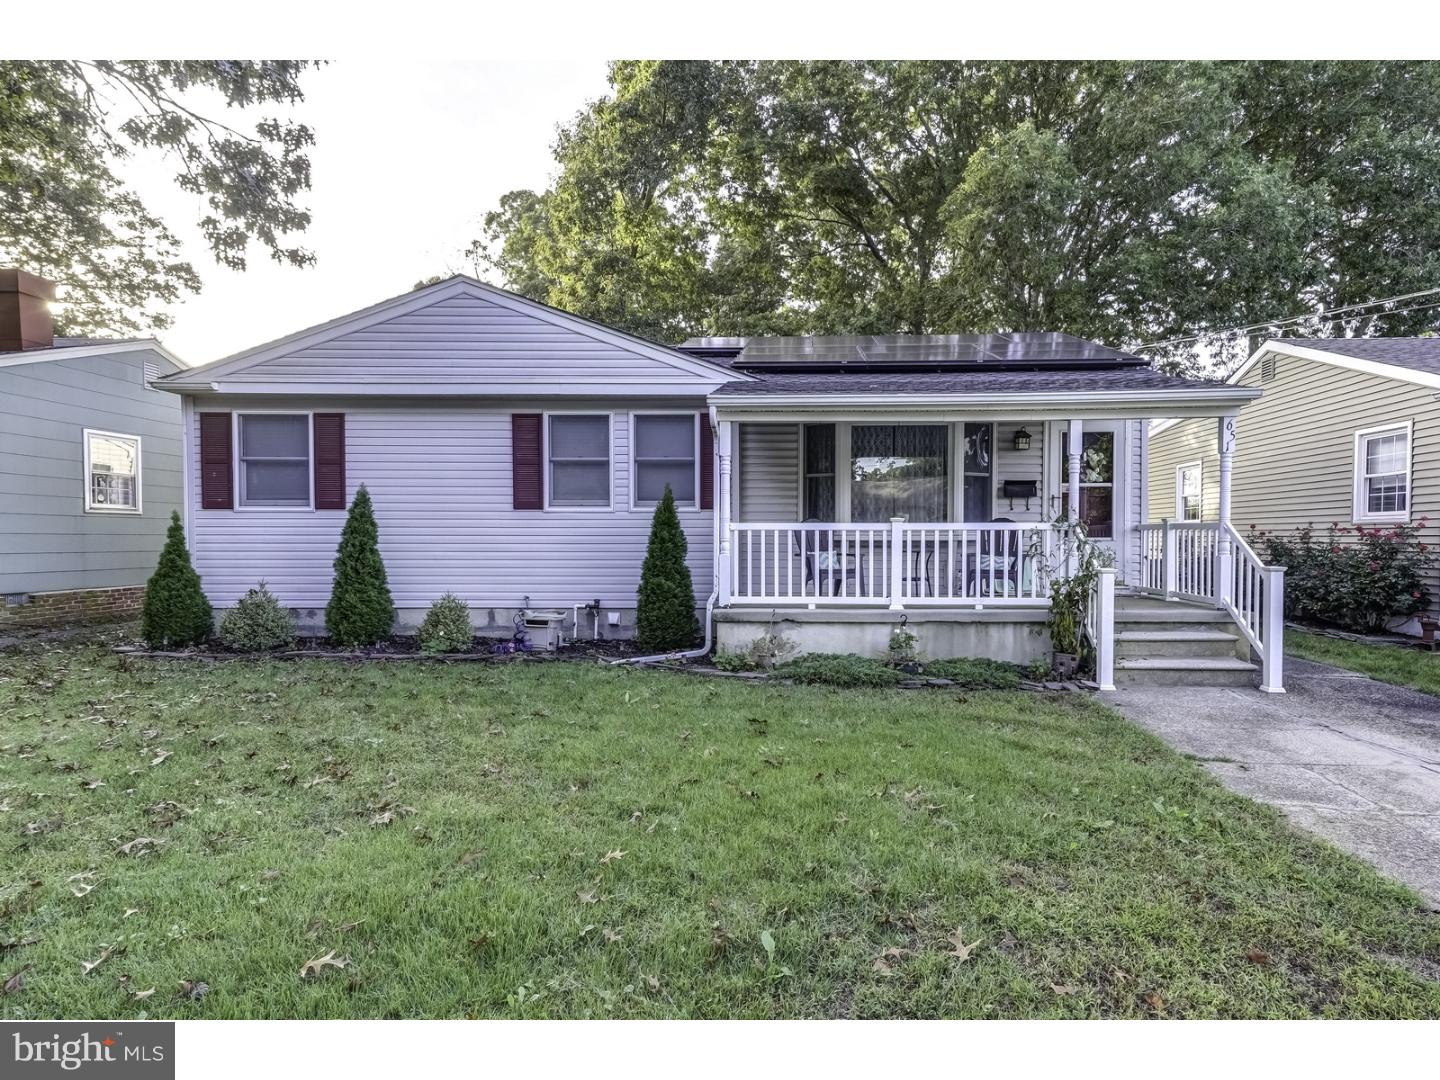 651 7TH STREET, SOMERS POINT, NJ 08244